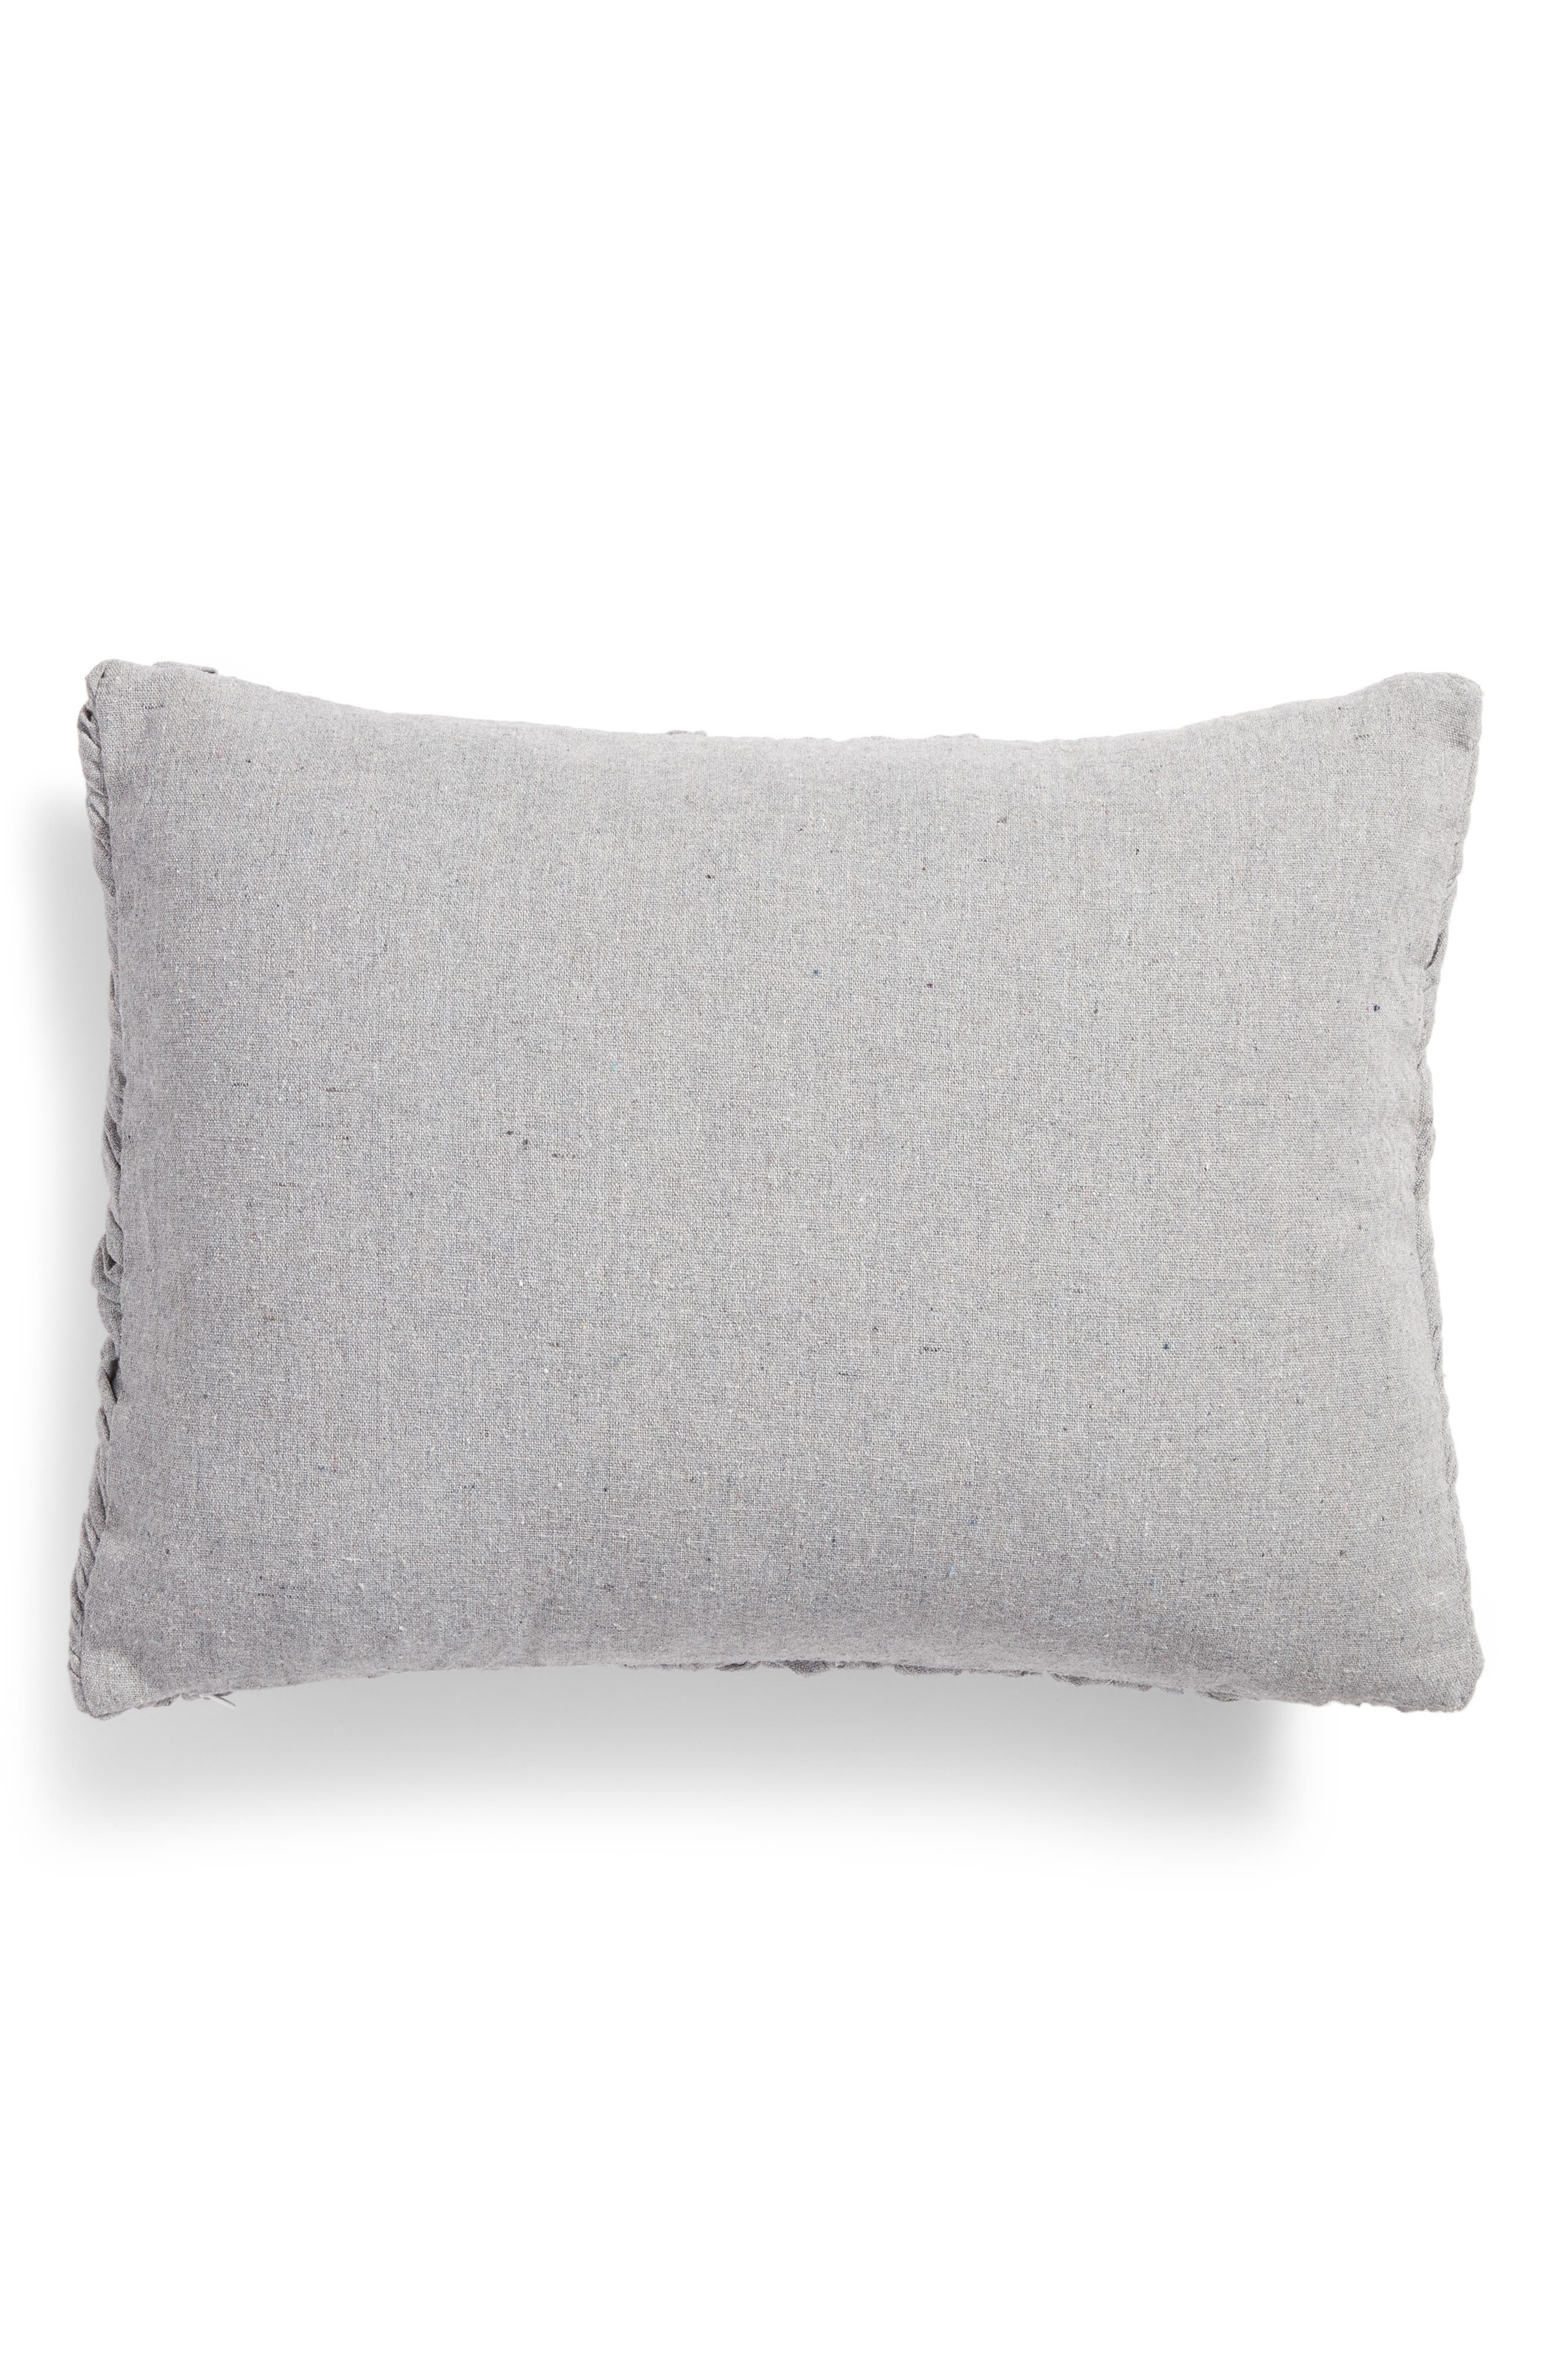 Remie Ruched Accent Pillow,                             Alternate thumbnail 3, color,                             Grey